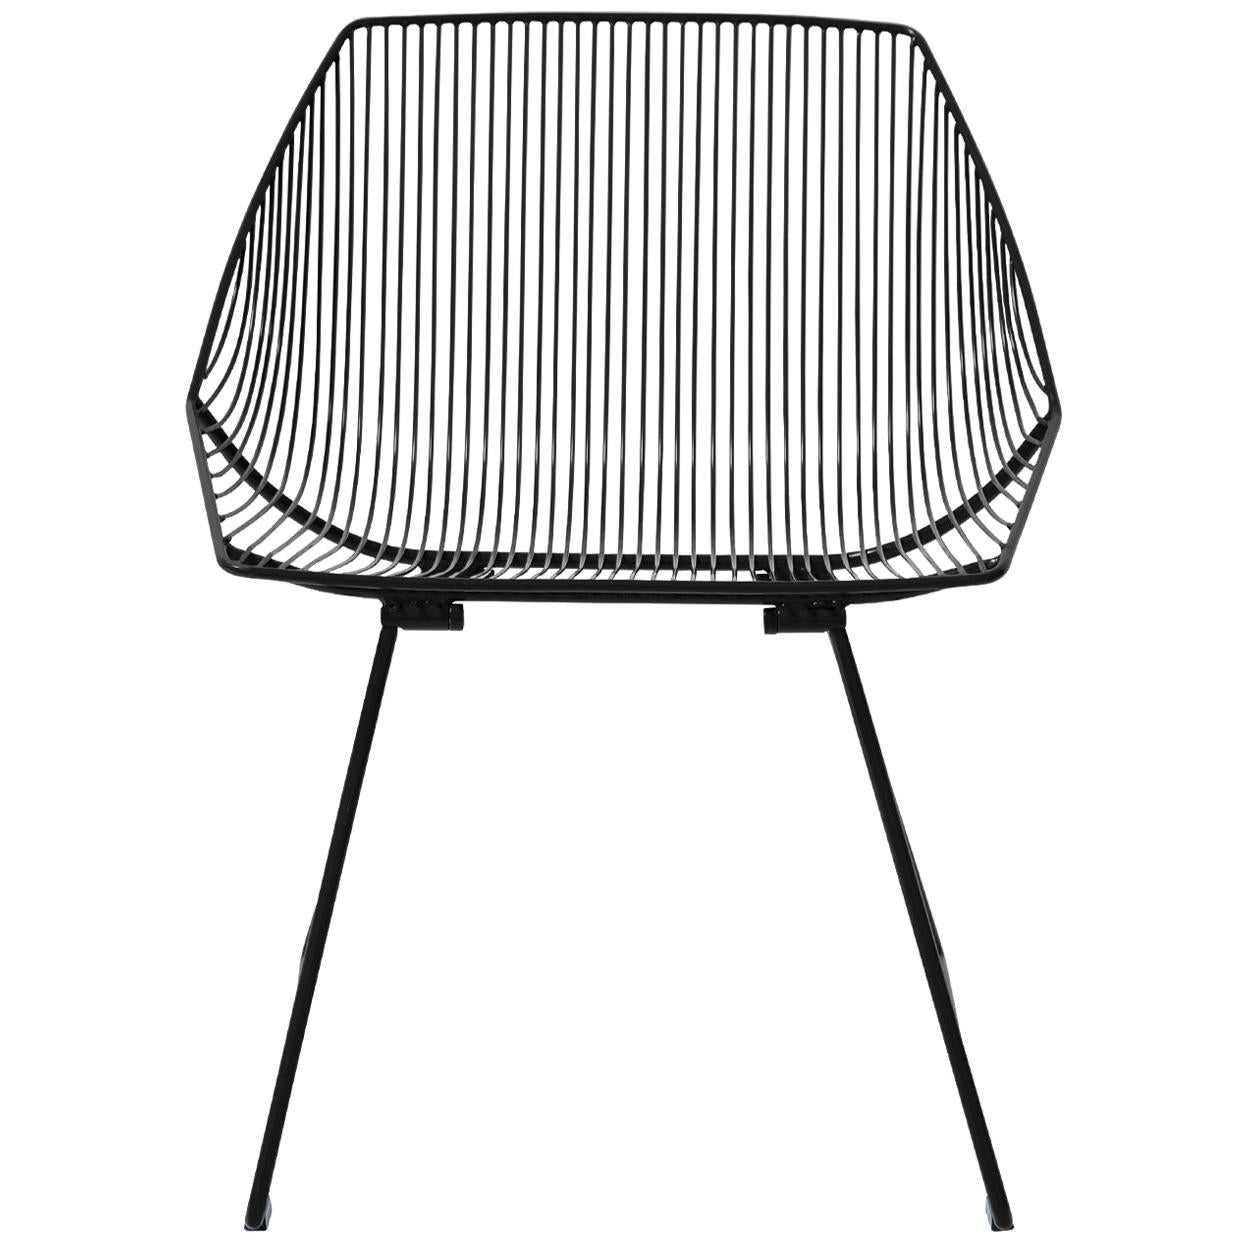 Minimalist Outdoor Wire Lounge Chair, The Bunny Lounge in Black